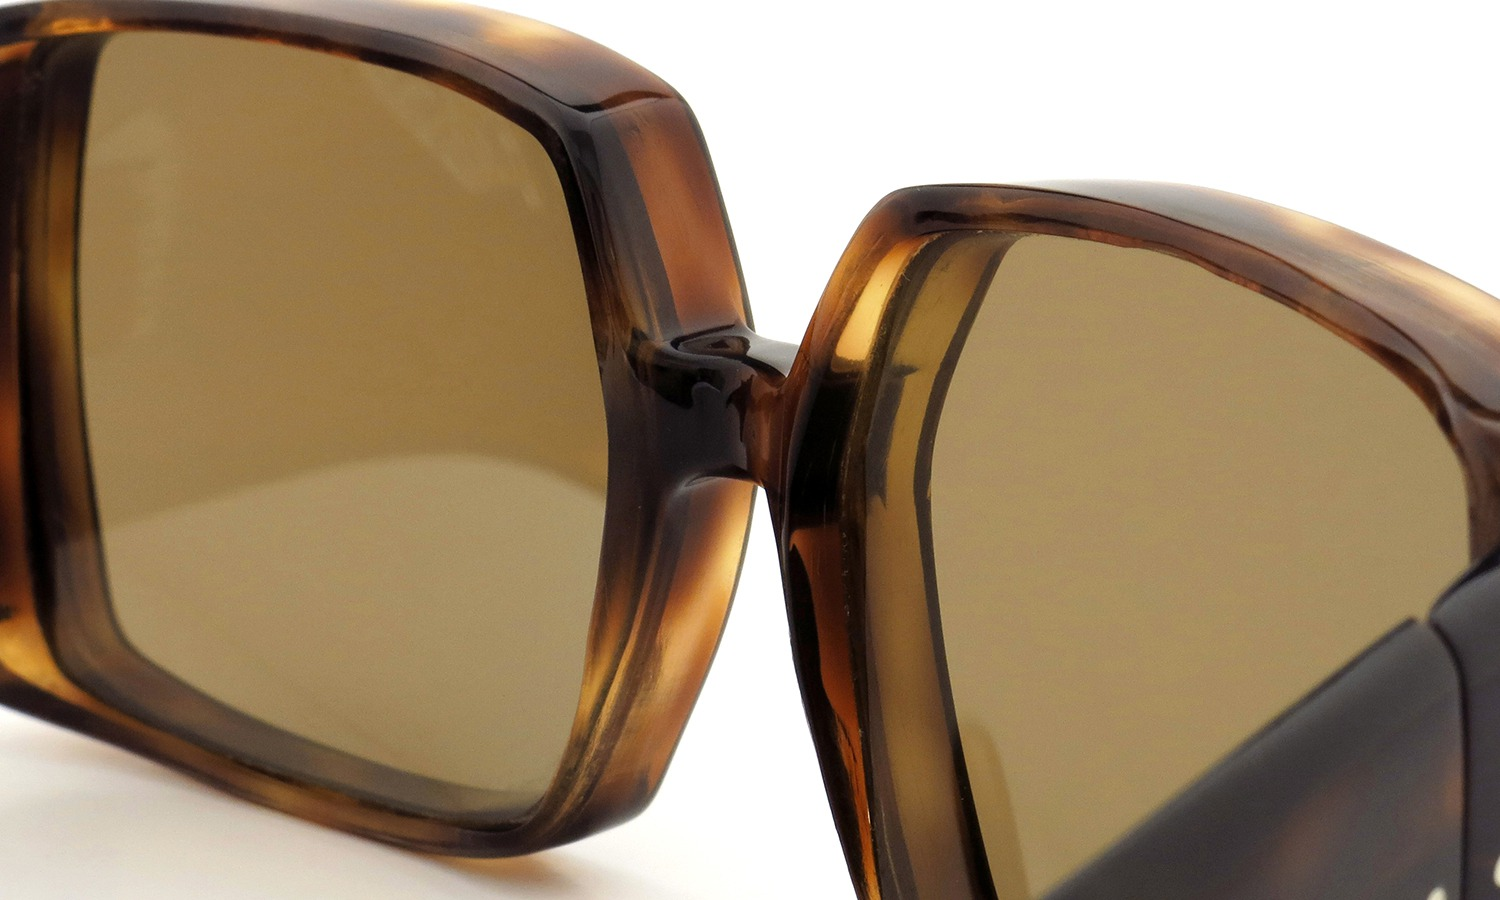 FRANCE Vintage サングラス 推定1950年代 THREE DOTS BIG SQUARE FRAME 63-17 DEMI